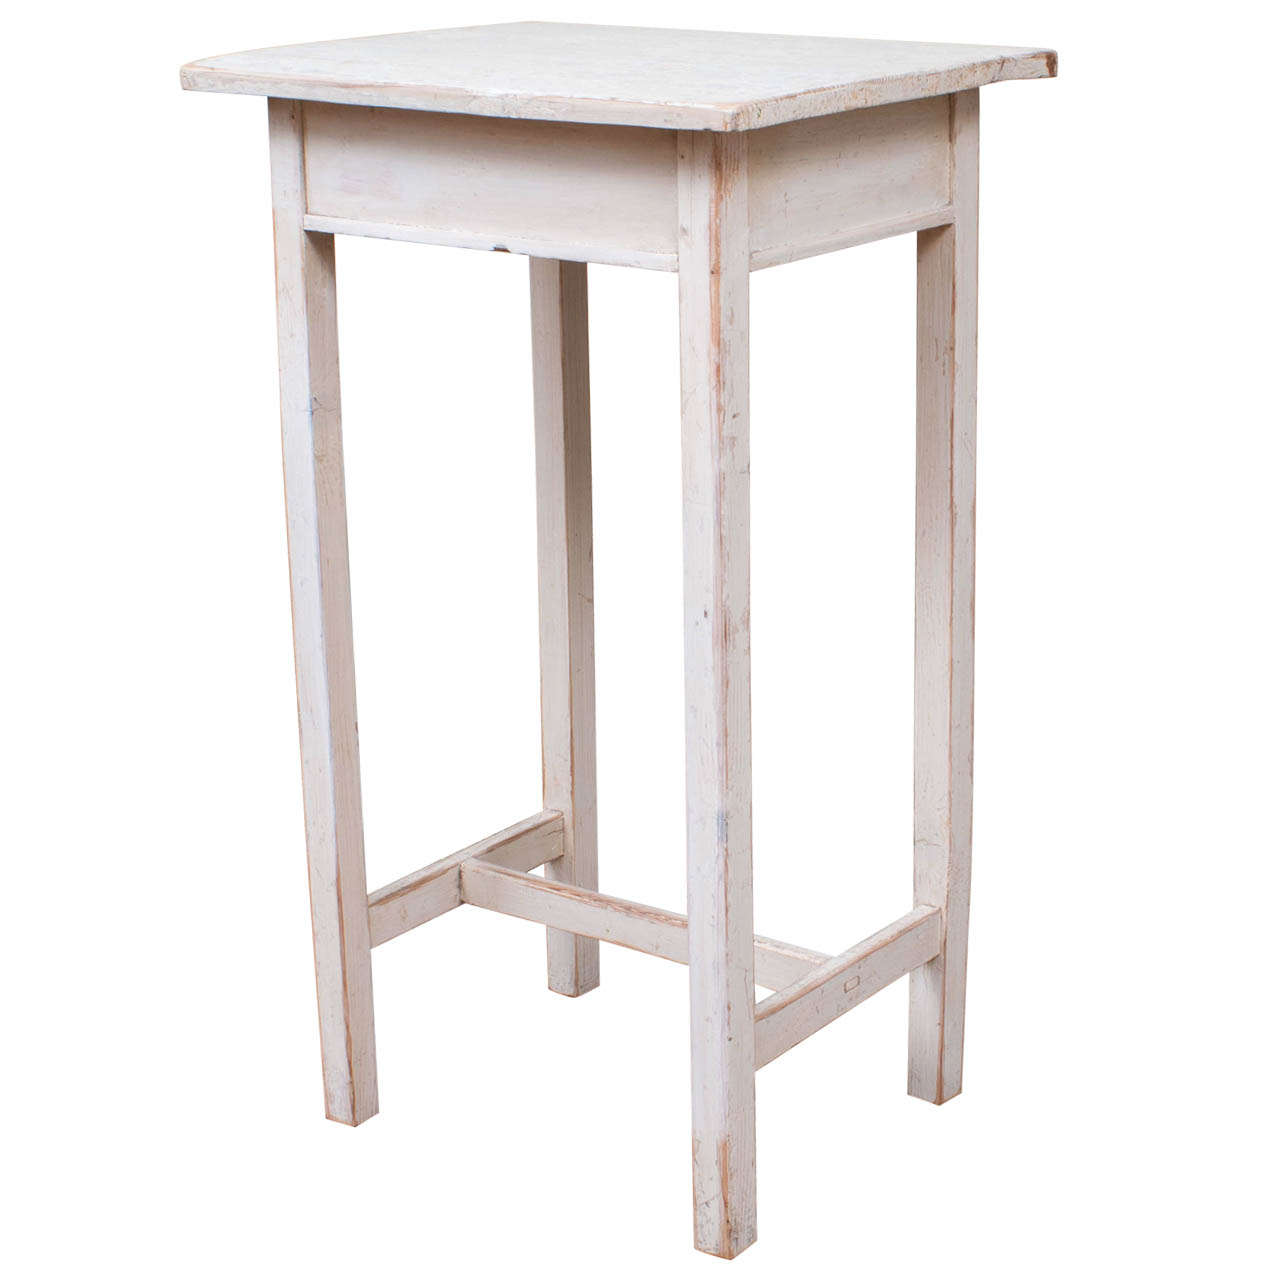 painted pine end table ashley furniture accent tables small teal cabinet blanket box ikea safavieh couture white console coffee legs stainless steel kitchen cart corner dining set